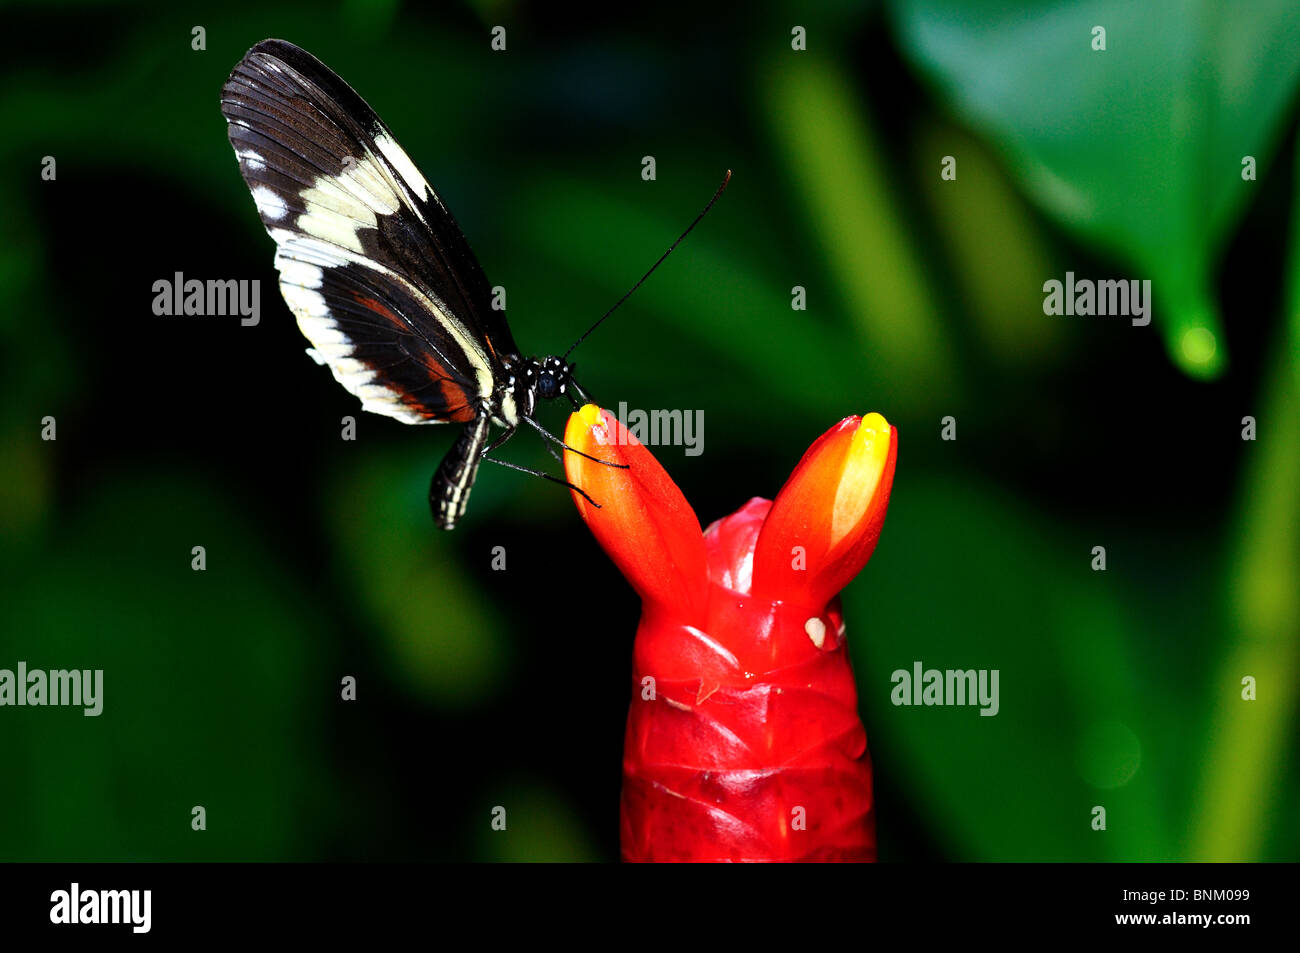 Butterfly on a red flower bulb. Stock Photo